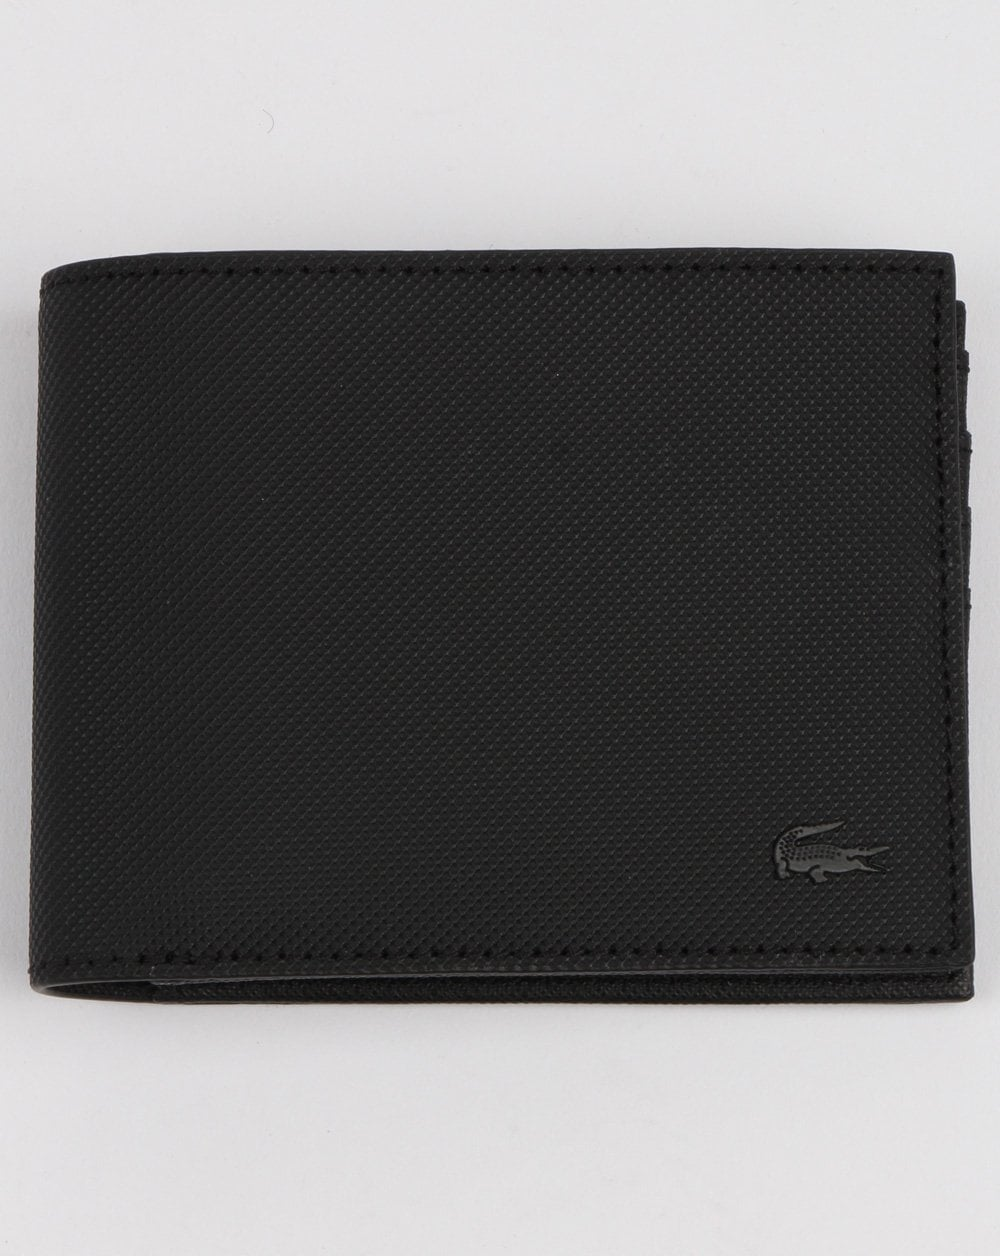 dd4119fb0c0 Lacoste Lacoste Billfold Leather Wallet Black